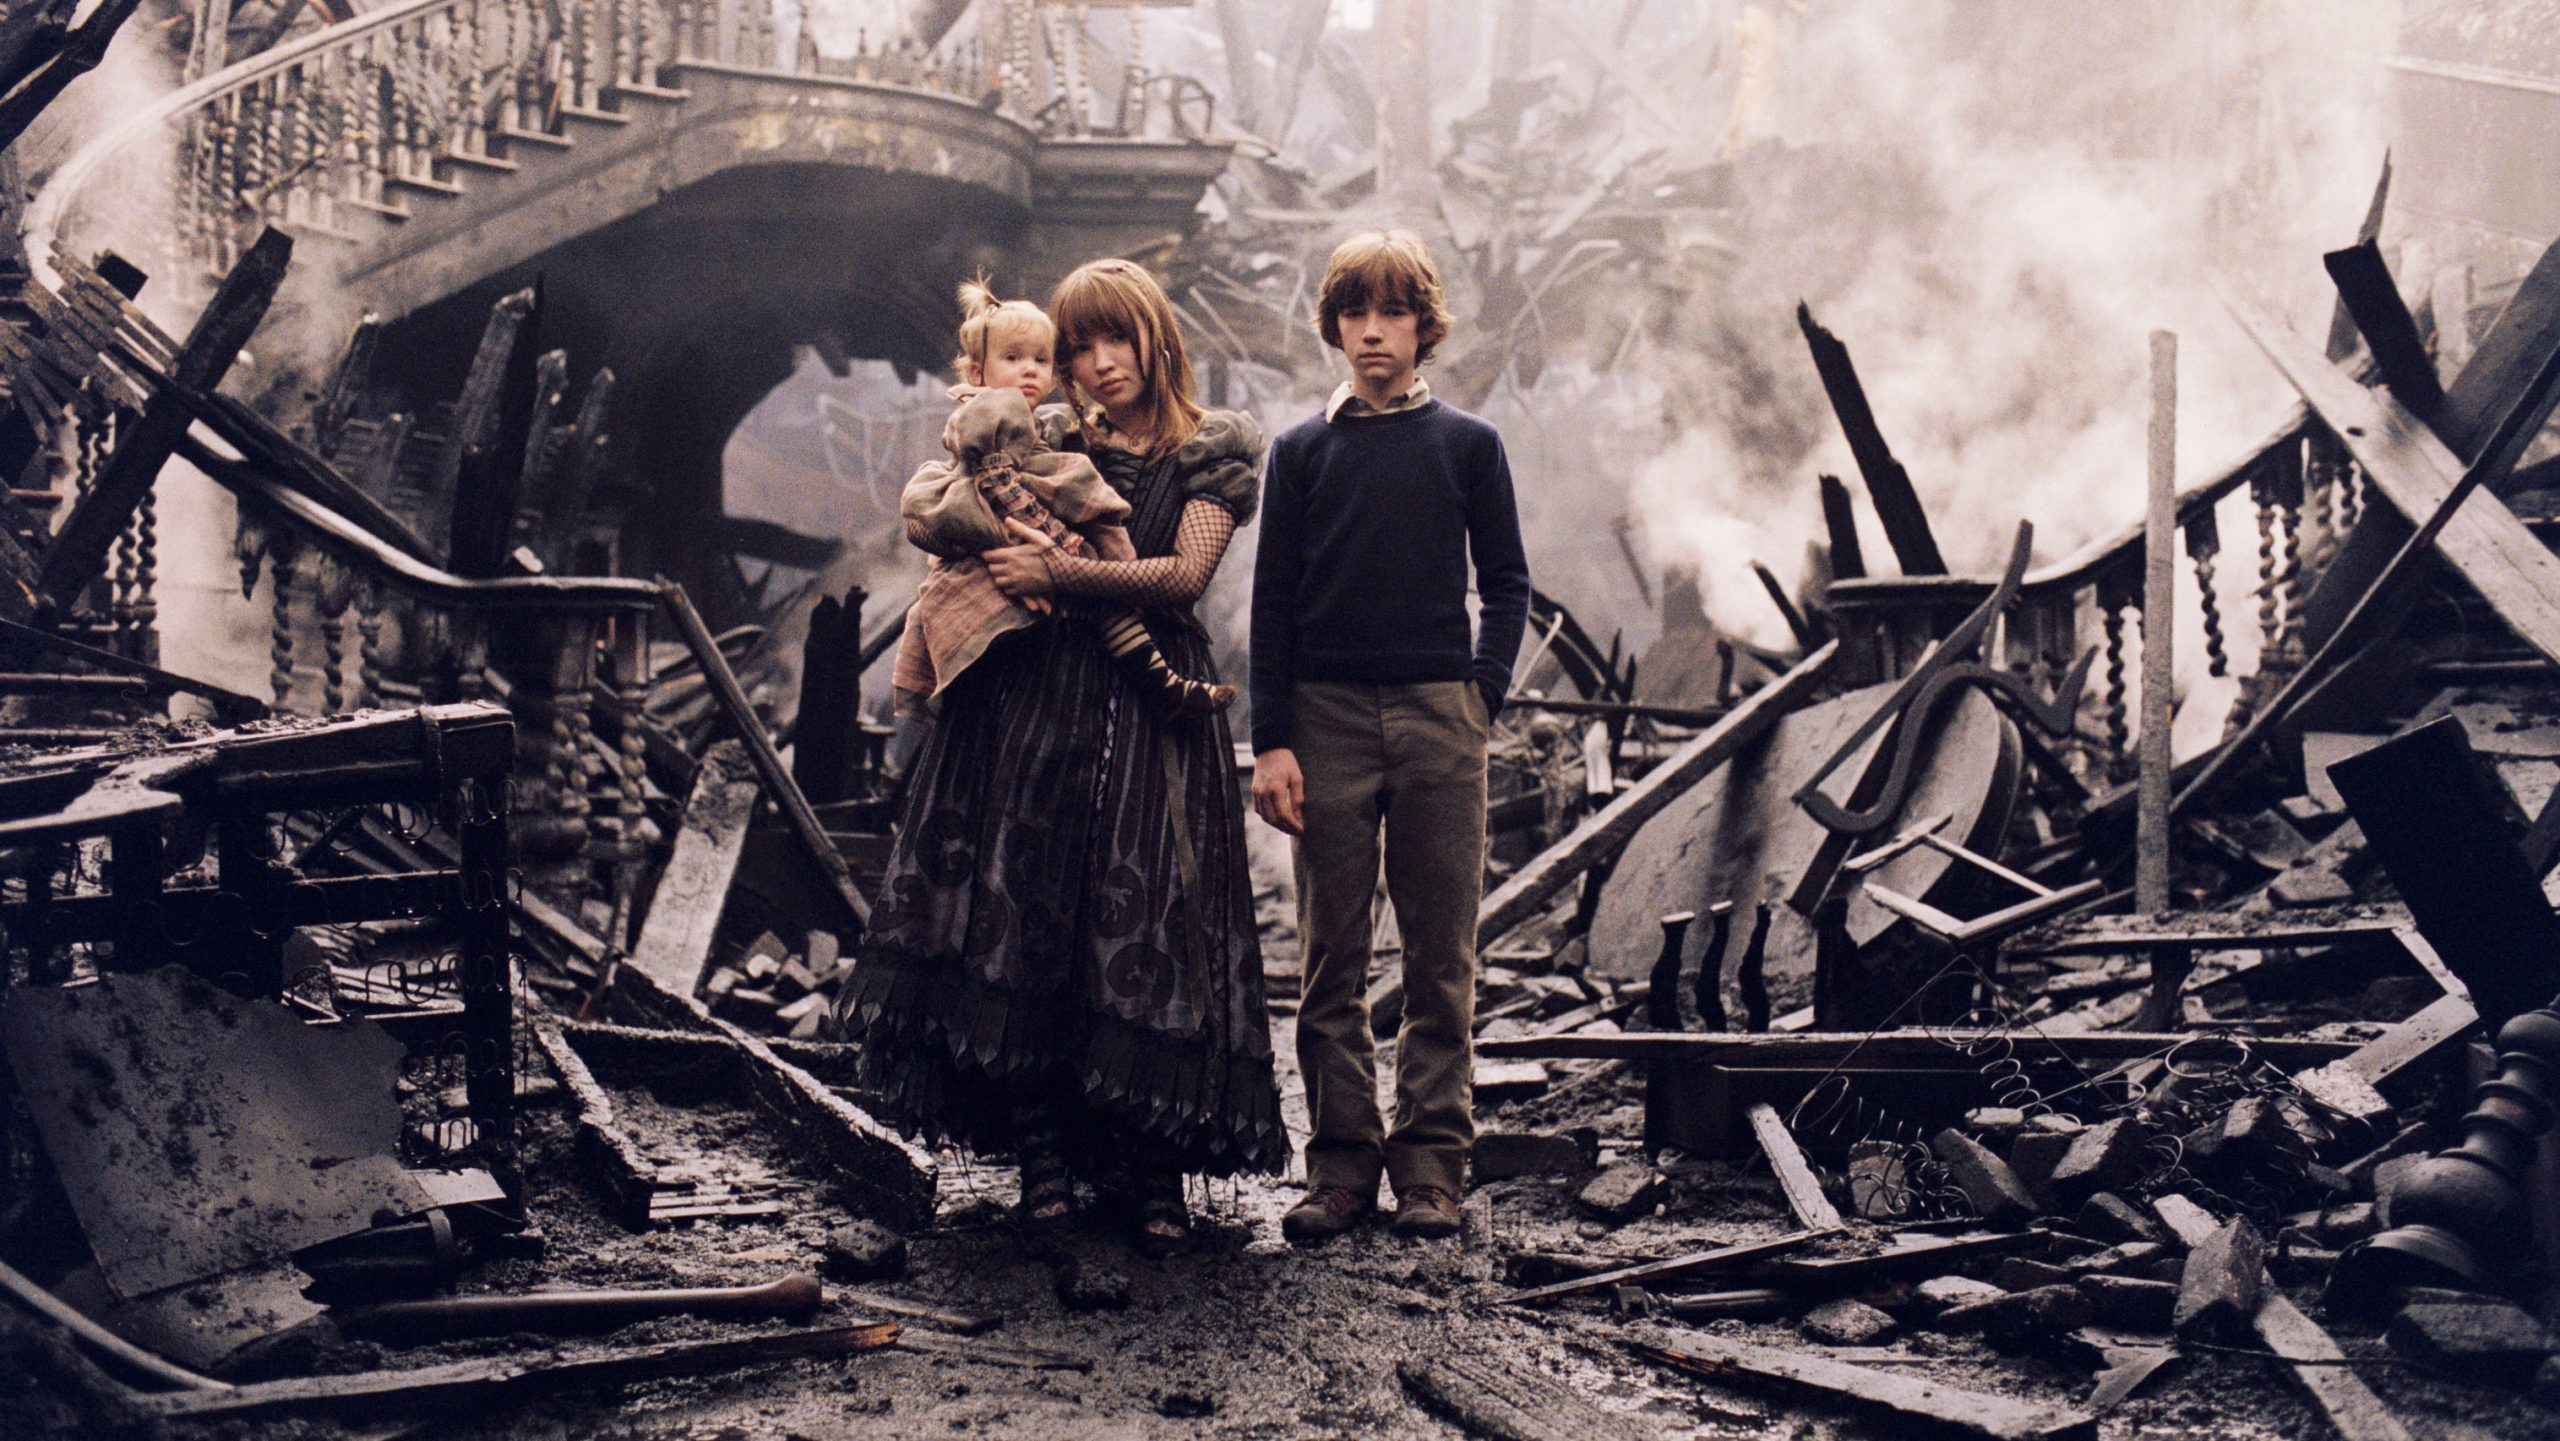 The three Baudelaire siblings standing in the burnt ruins of their former home.